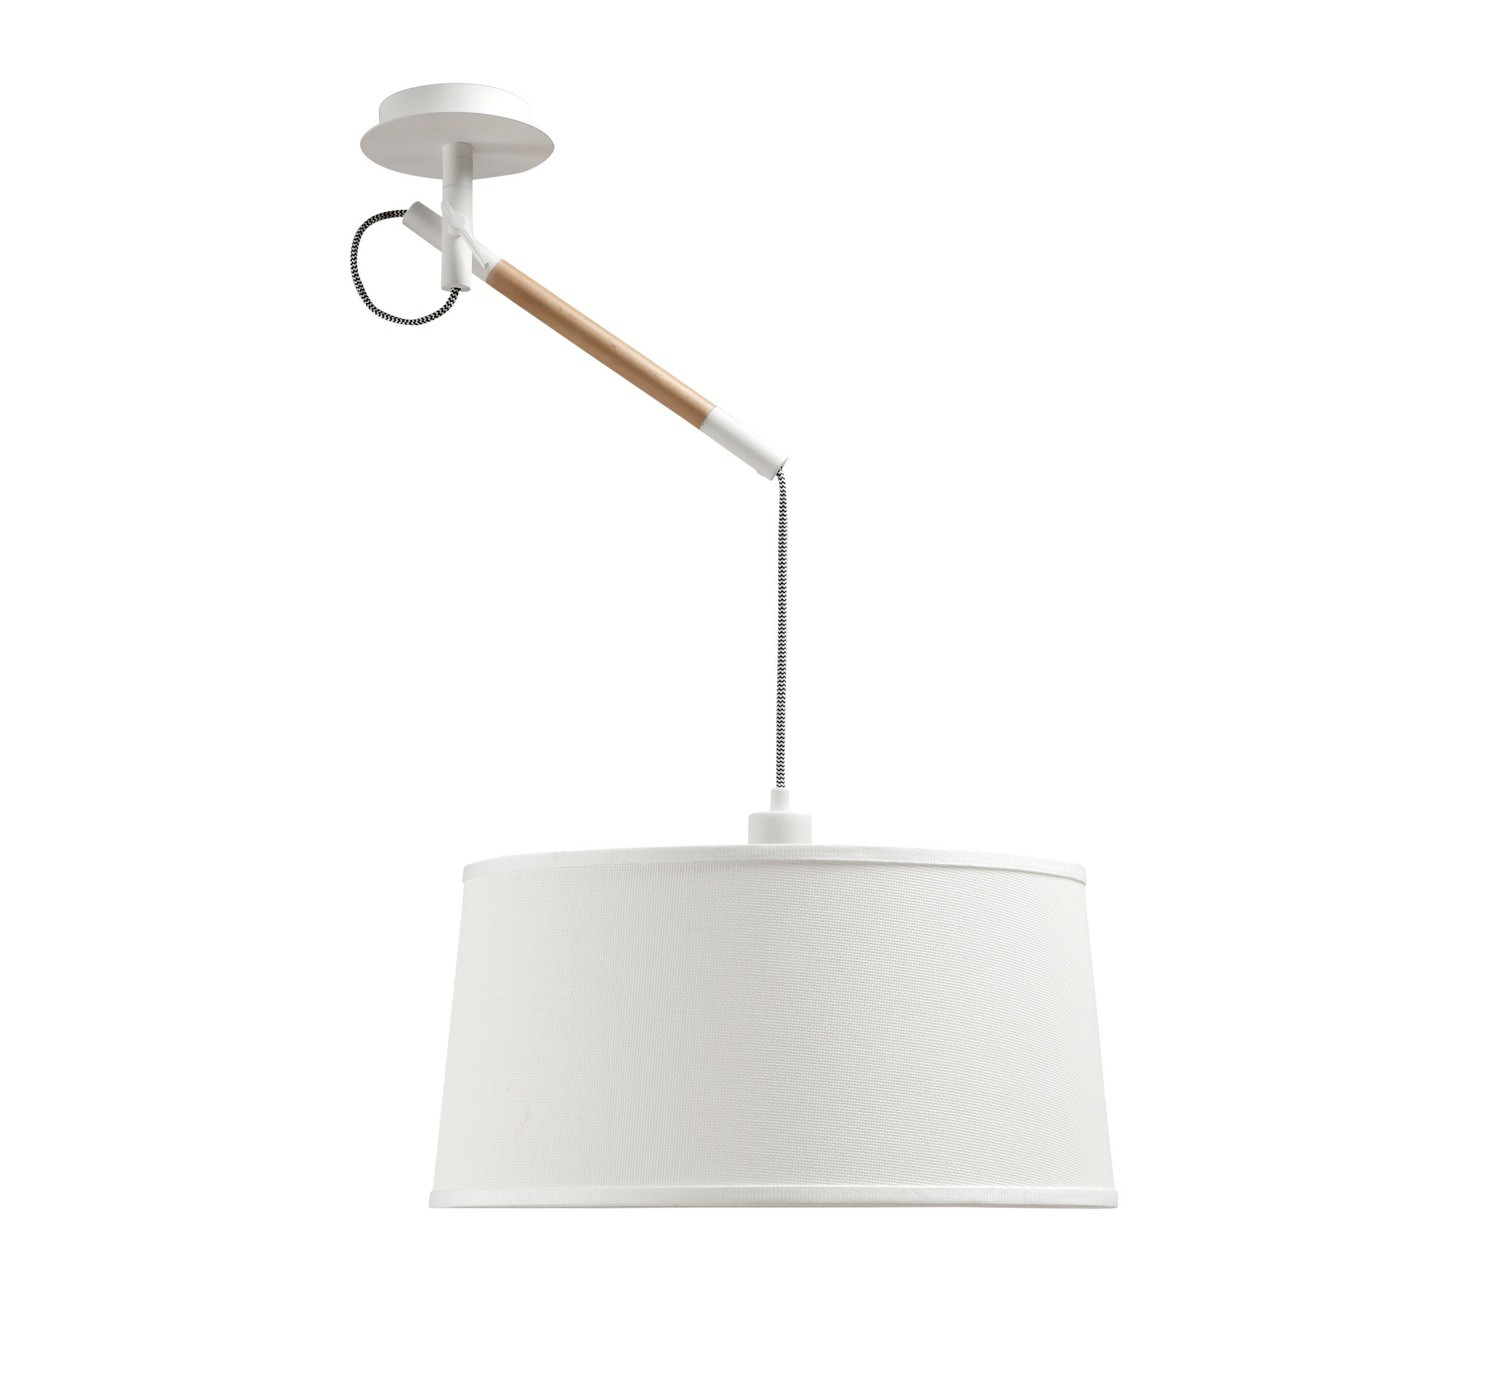 Nordica Multi Position Pendant With White Shade 1 Light E27, Matt White/Beech With Ivory White Shade